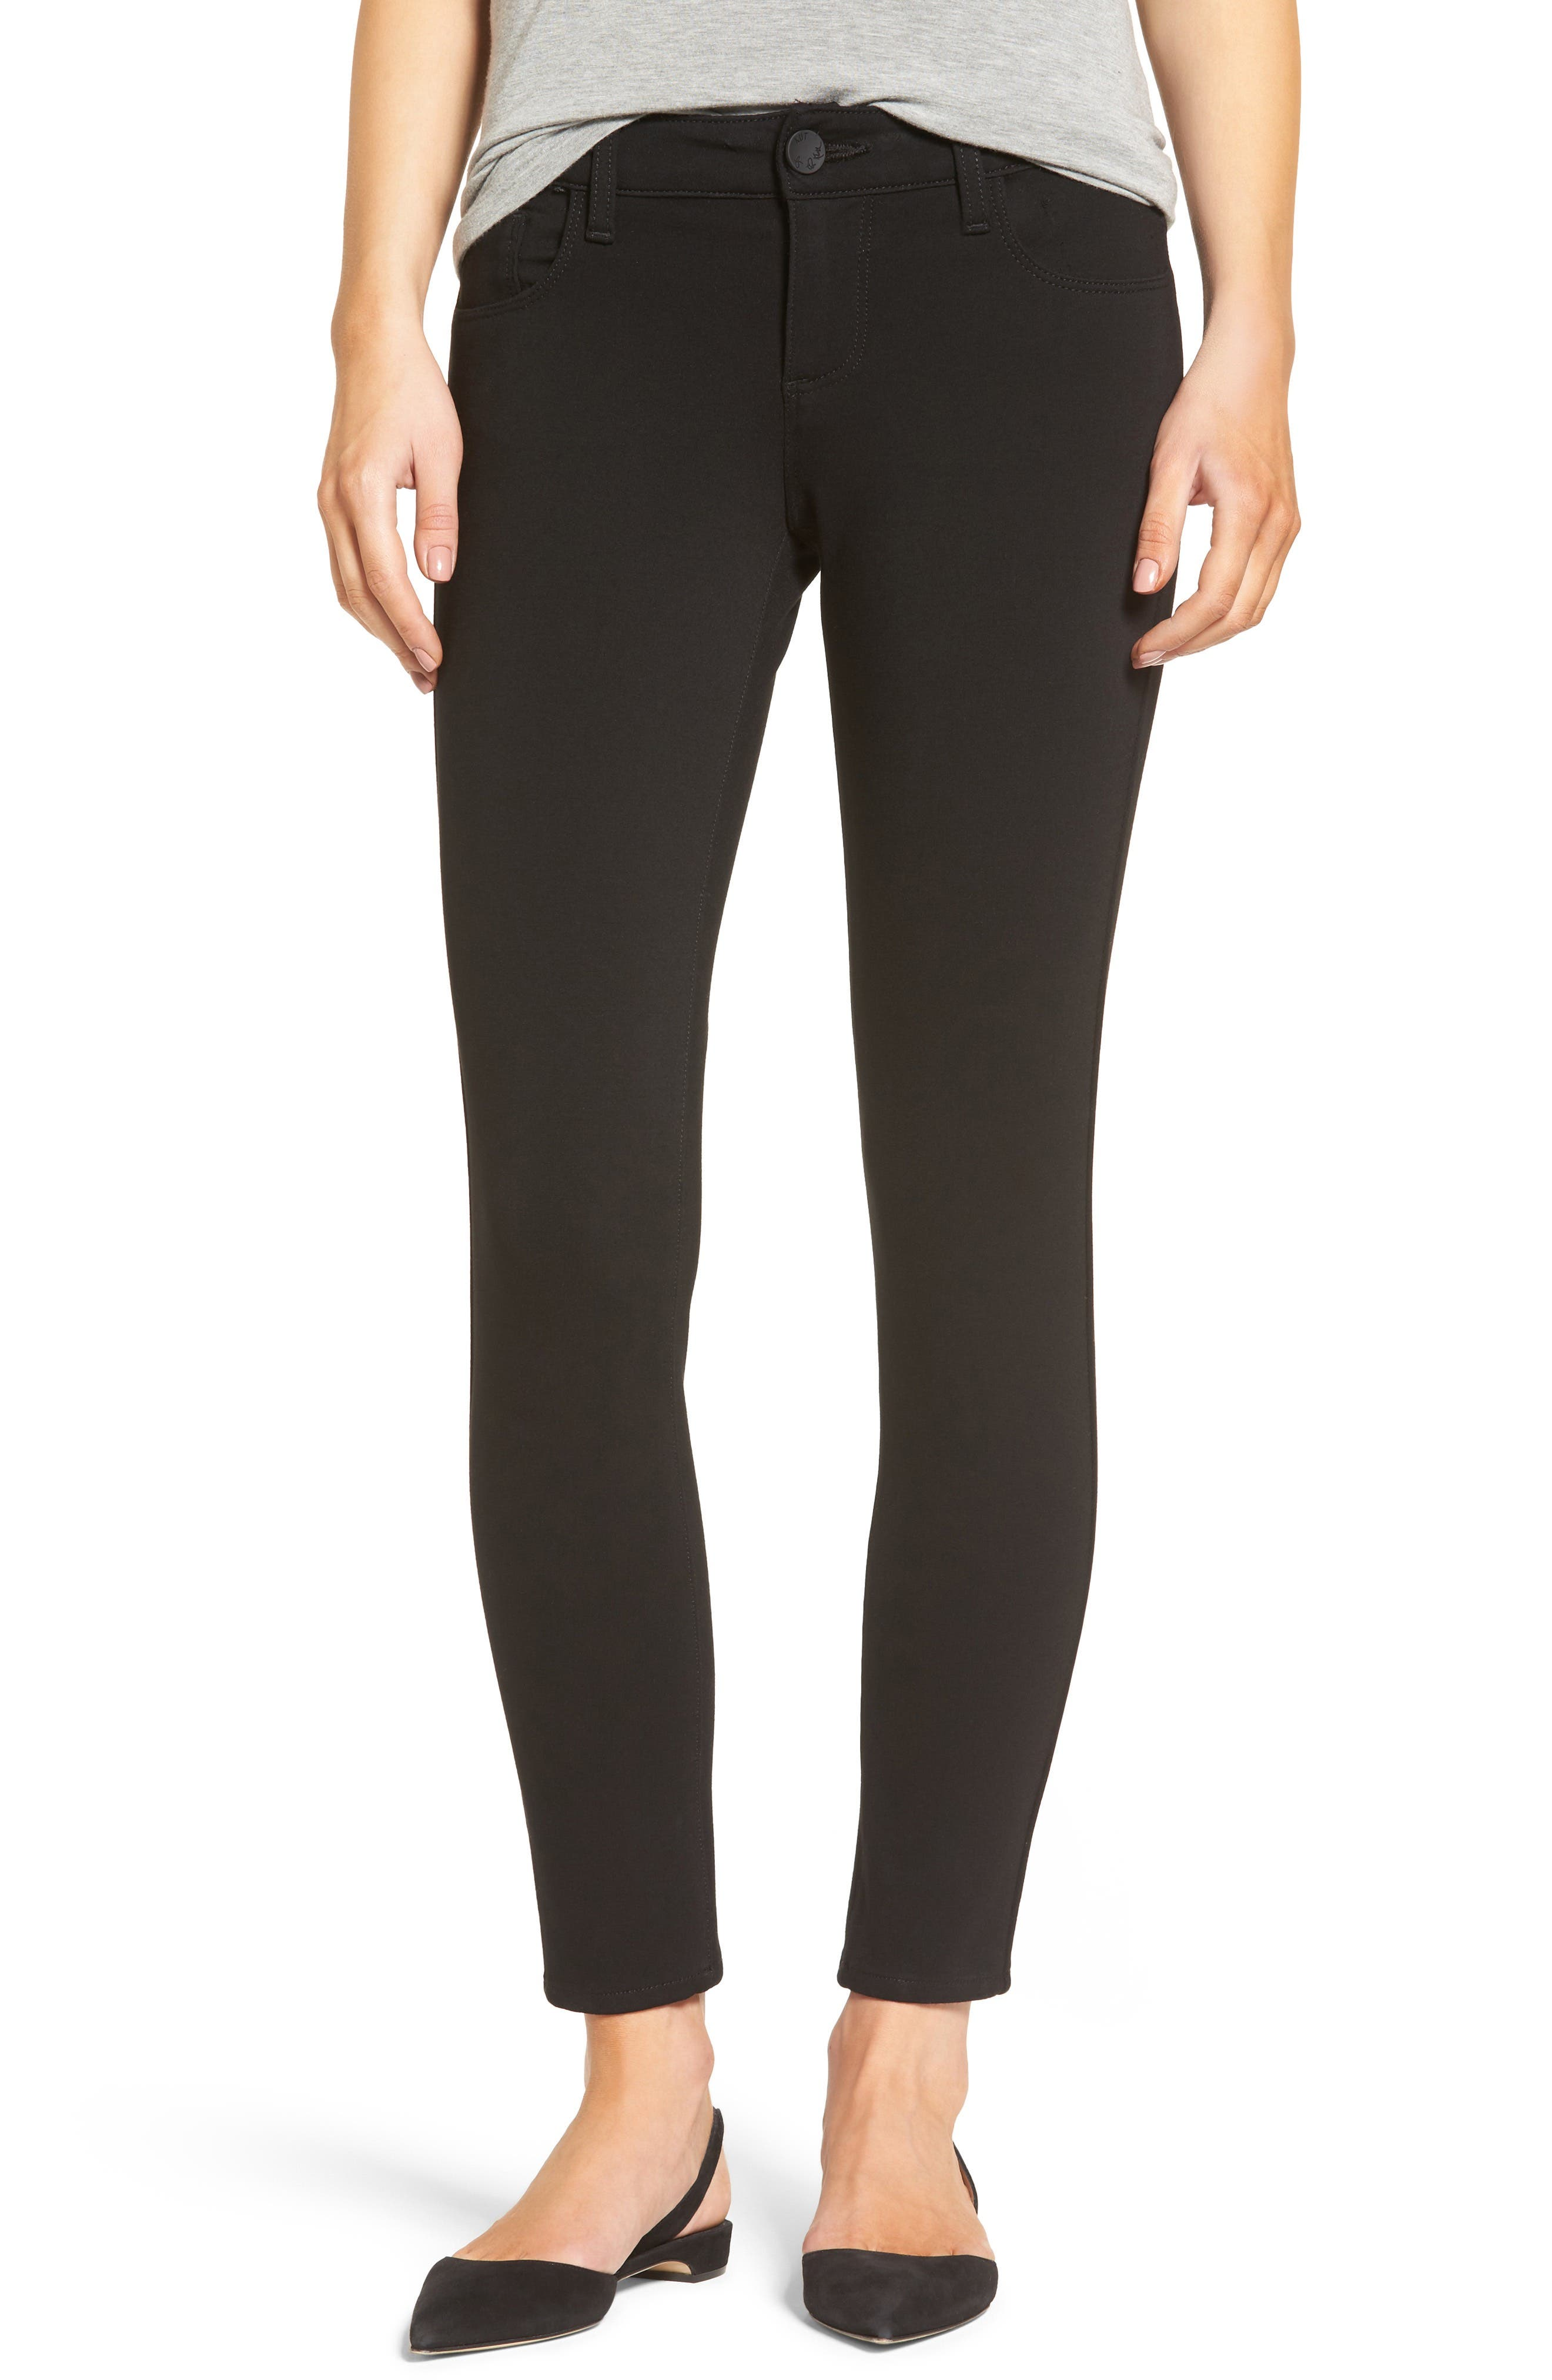 Main Image - KUT from the Kloth Donna Ponte Knit Skinny Jeans (Regular & Petite)